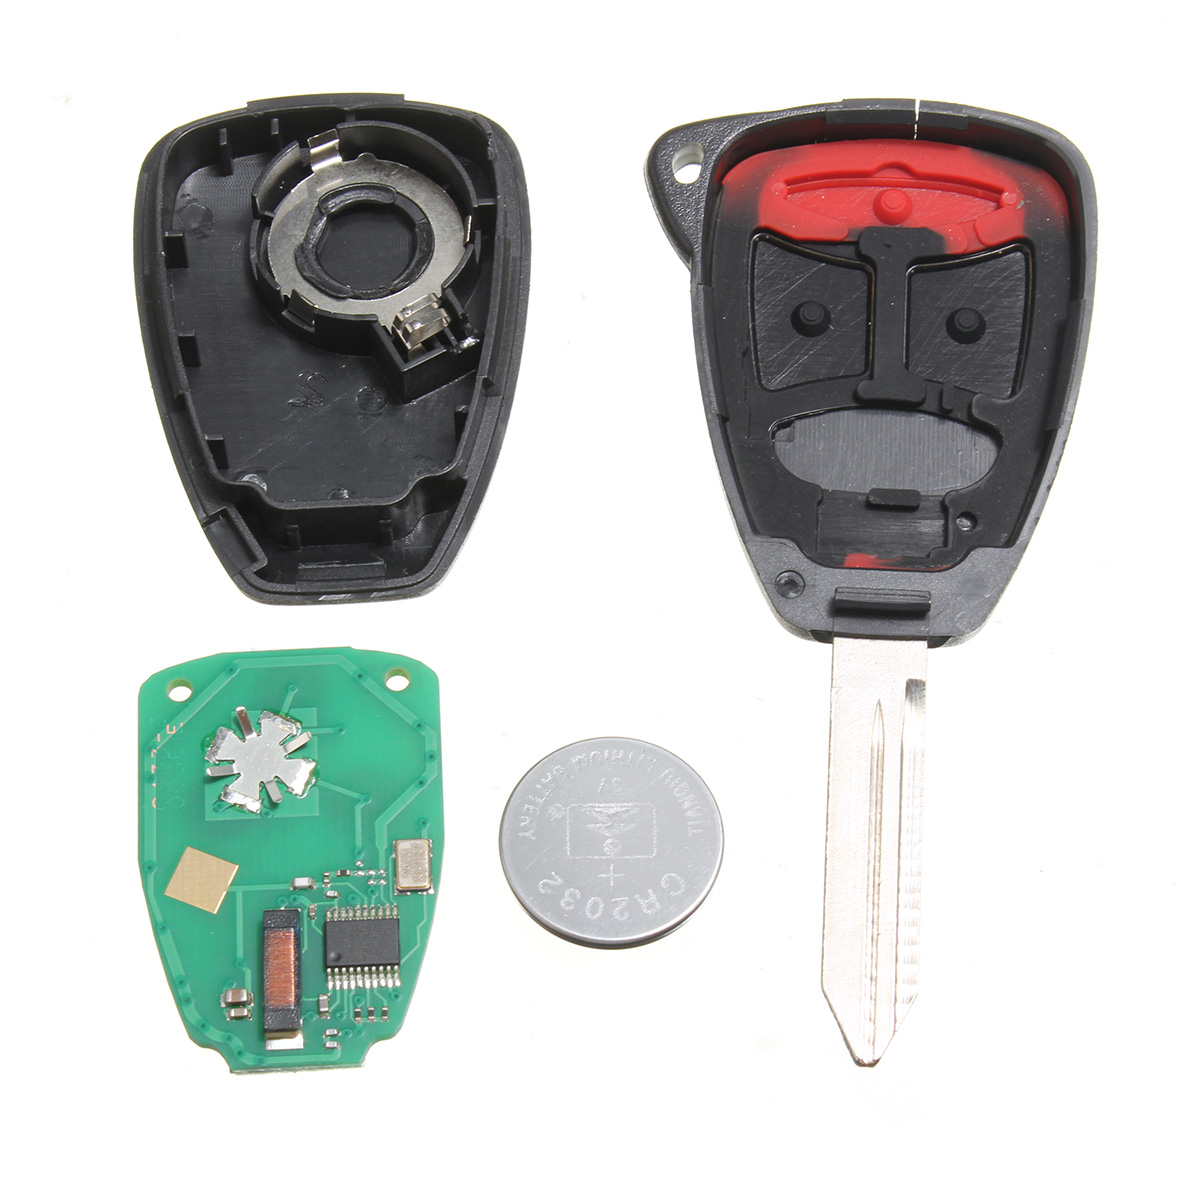 Replacement 3b uncut keyless entry remote head key k0bdt04a for chrysler dodge lazada malaysia